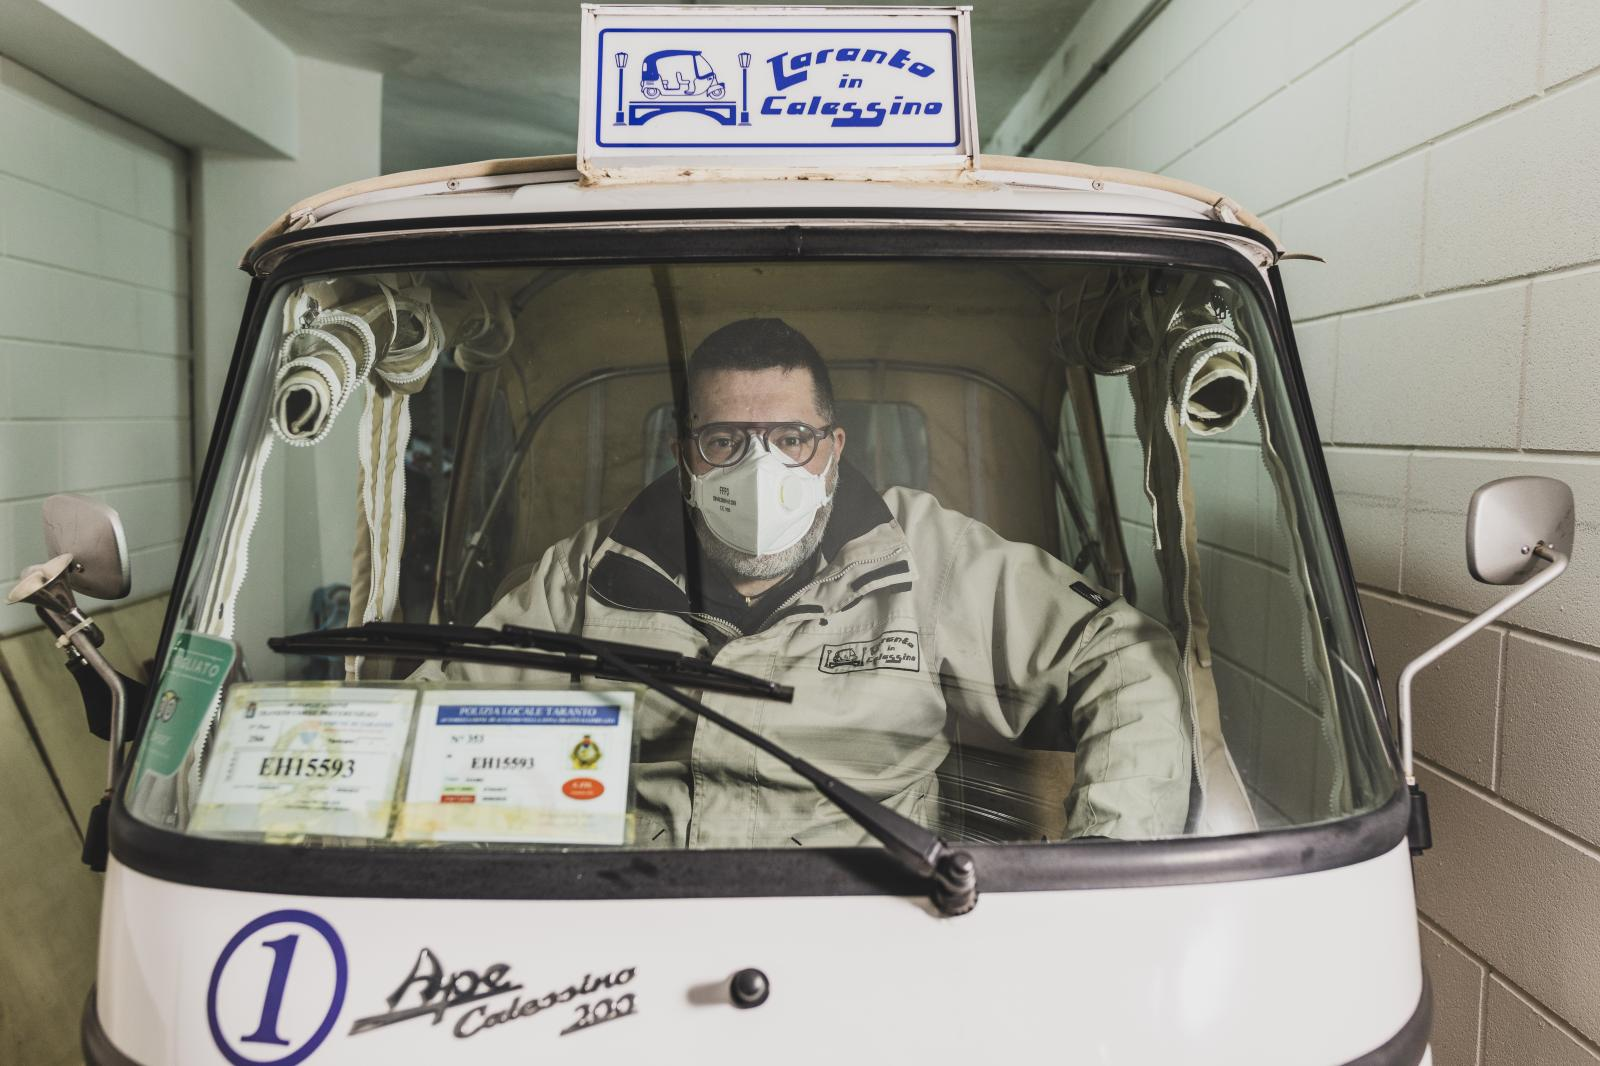 – Giovanni Cianciaruso (48). In 2017 he launched a start-up with the Apecar Calessino, the characteristic Italian three wheels' vehicle. He drives tourists around the old city of Taranto. In 2019 he managed to promote more than one thousand tours. Now he is forced to keep his three little vehicles in his garage. Before Covid19 stopped every activity, his association had turned into a company, and Cianciaruso was about to hire the first three part-time drivers, people who are now home without work.